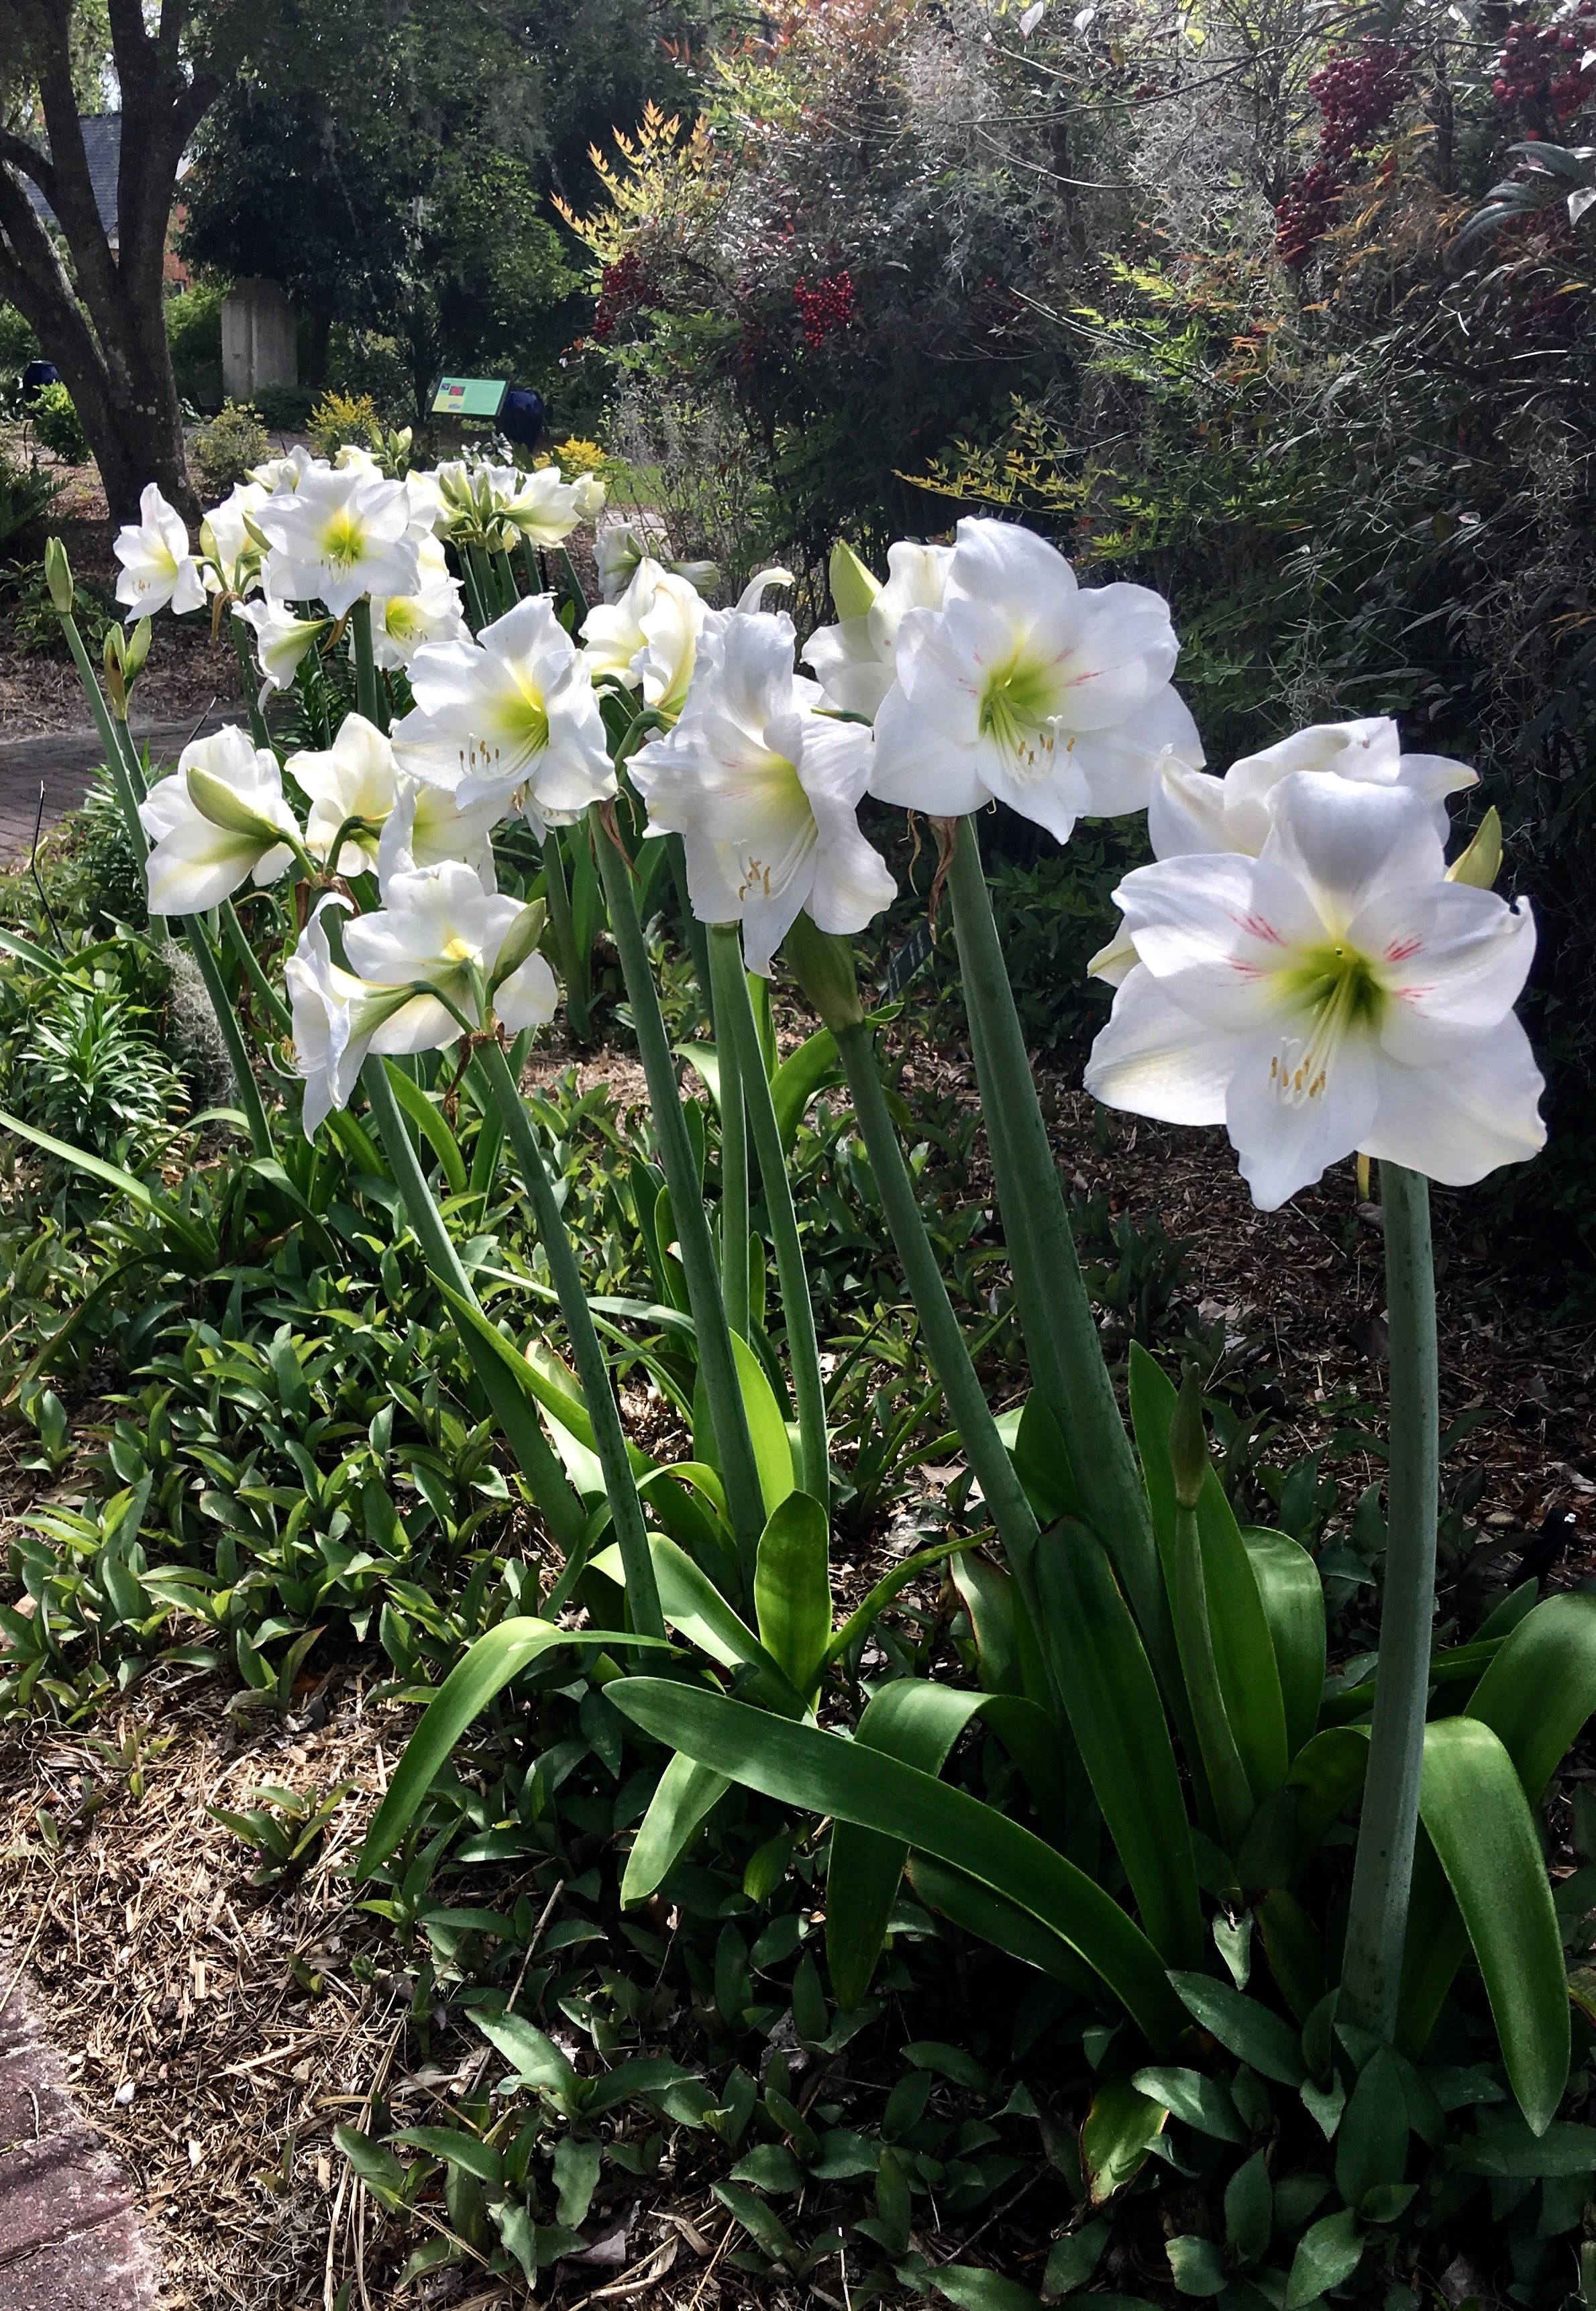 Amaryllises, for the most part, are considered bulbs for zones 8 to 10, but 'Wedding Dance' can be grown in zone 7b and possibly colder zones, according to Tony Avent with Plant Delights Nursery.